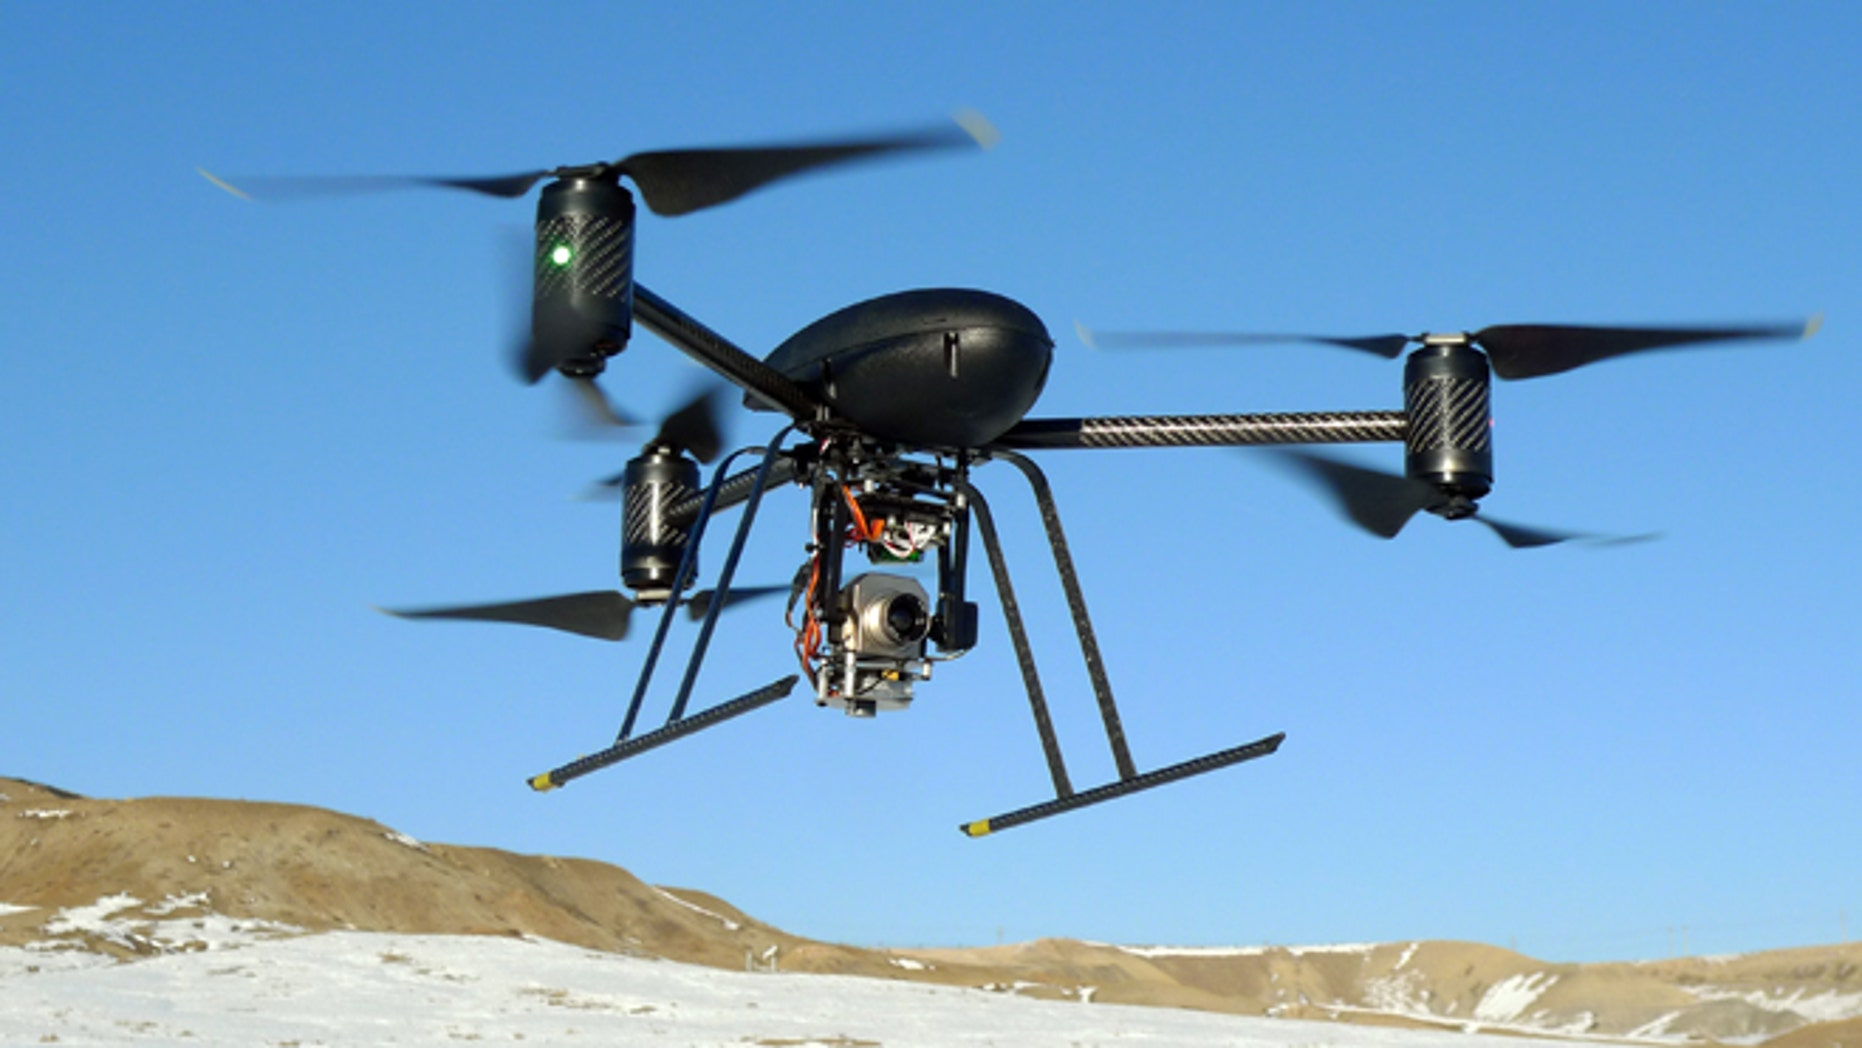 In this Jan. 8, 2009, photo provided by the Mesa County, Colo., Sheriff's Department, a small Draganflyer X6 drone is photographed during a test flight in Mesa County, Colo., with a Forward Looking Infer Red payload.